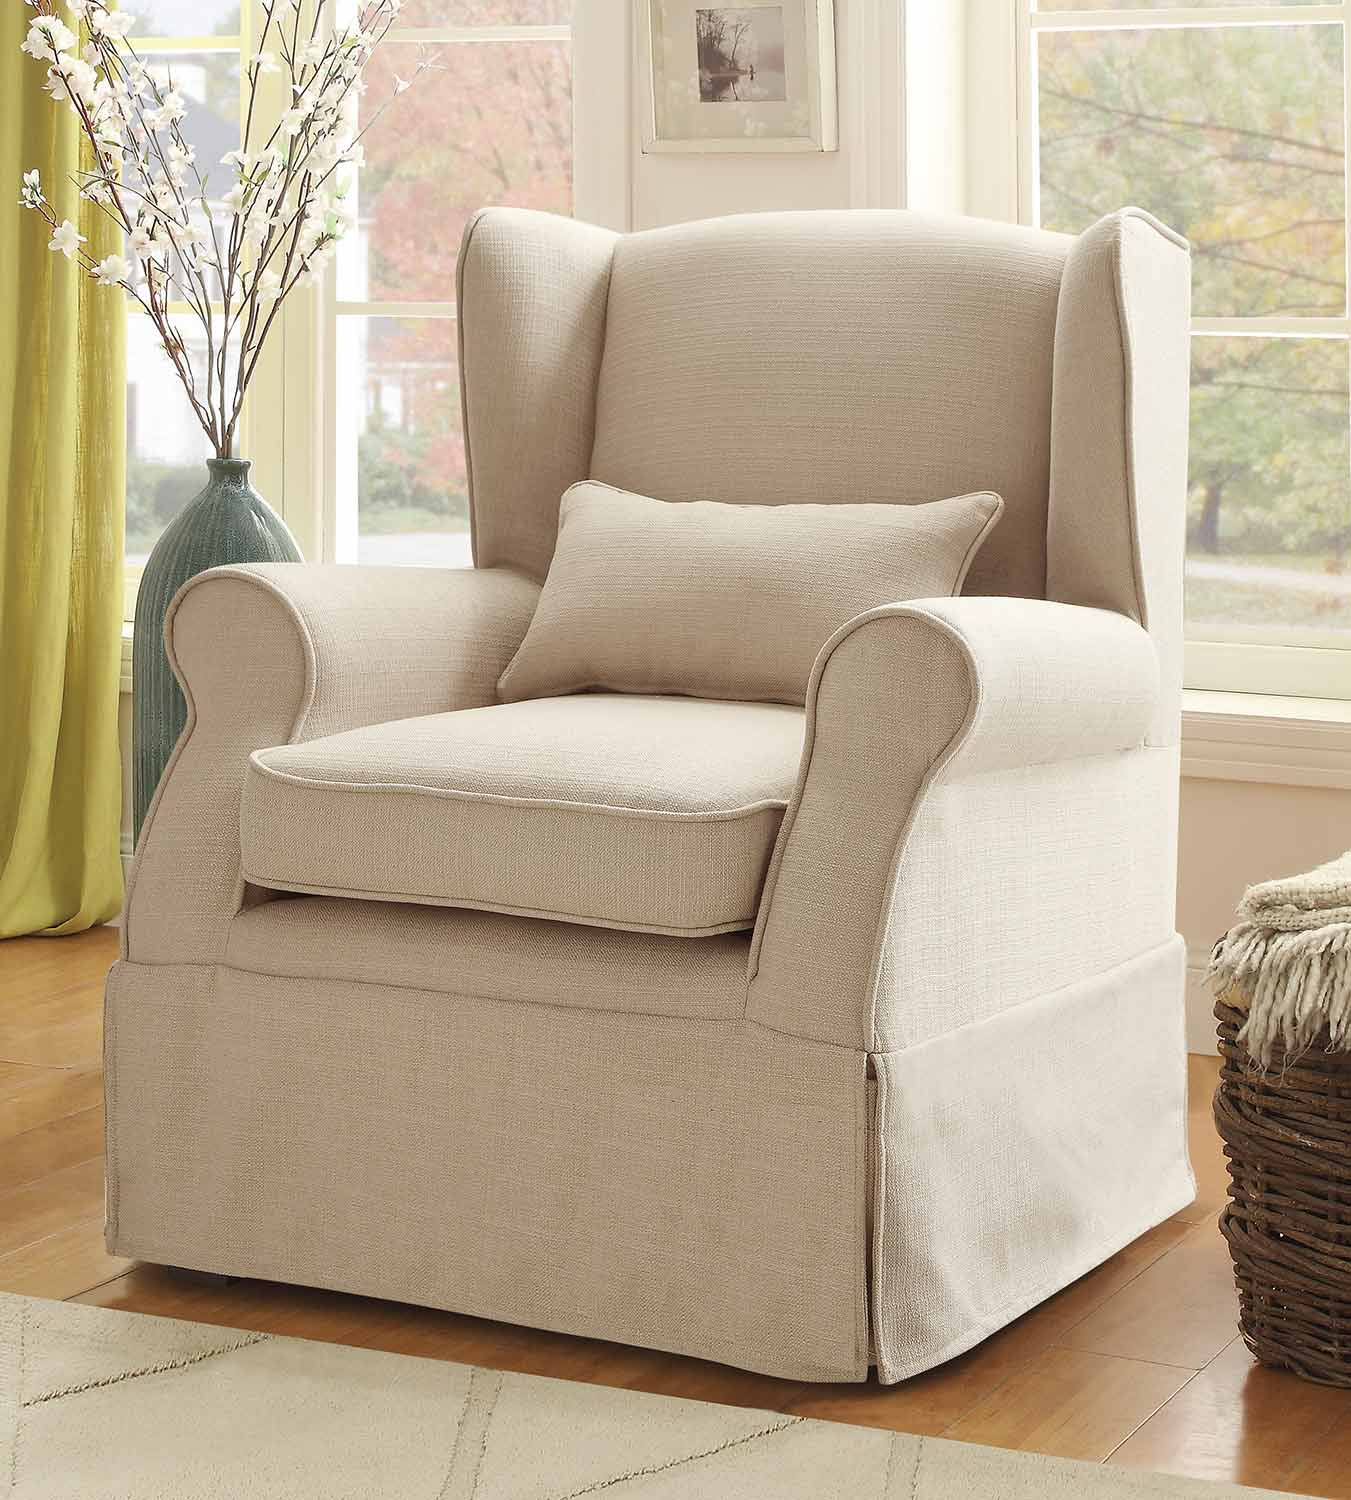 Homelegance Holtville Accent Chair with 1 Kidney Pillow - Neutral